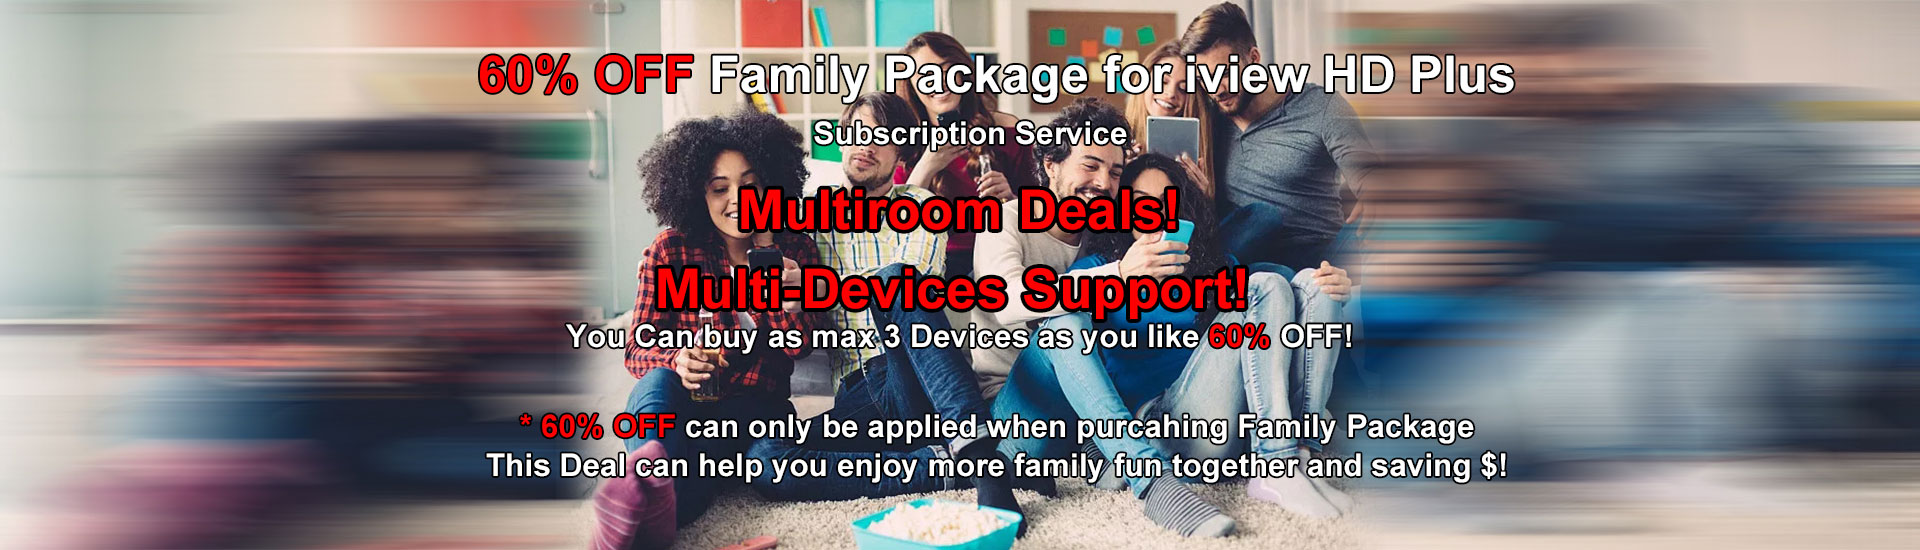 60% off family package